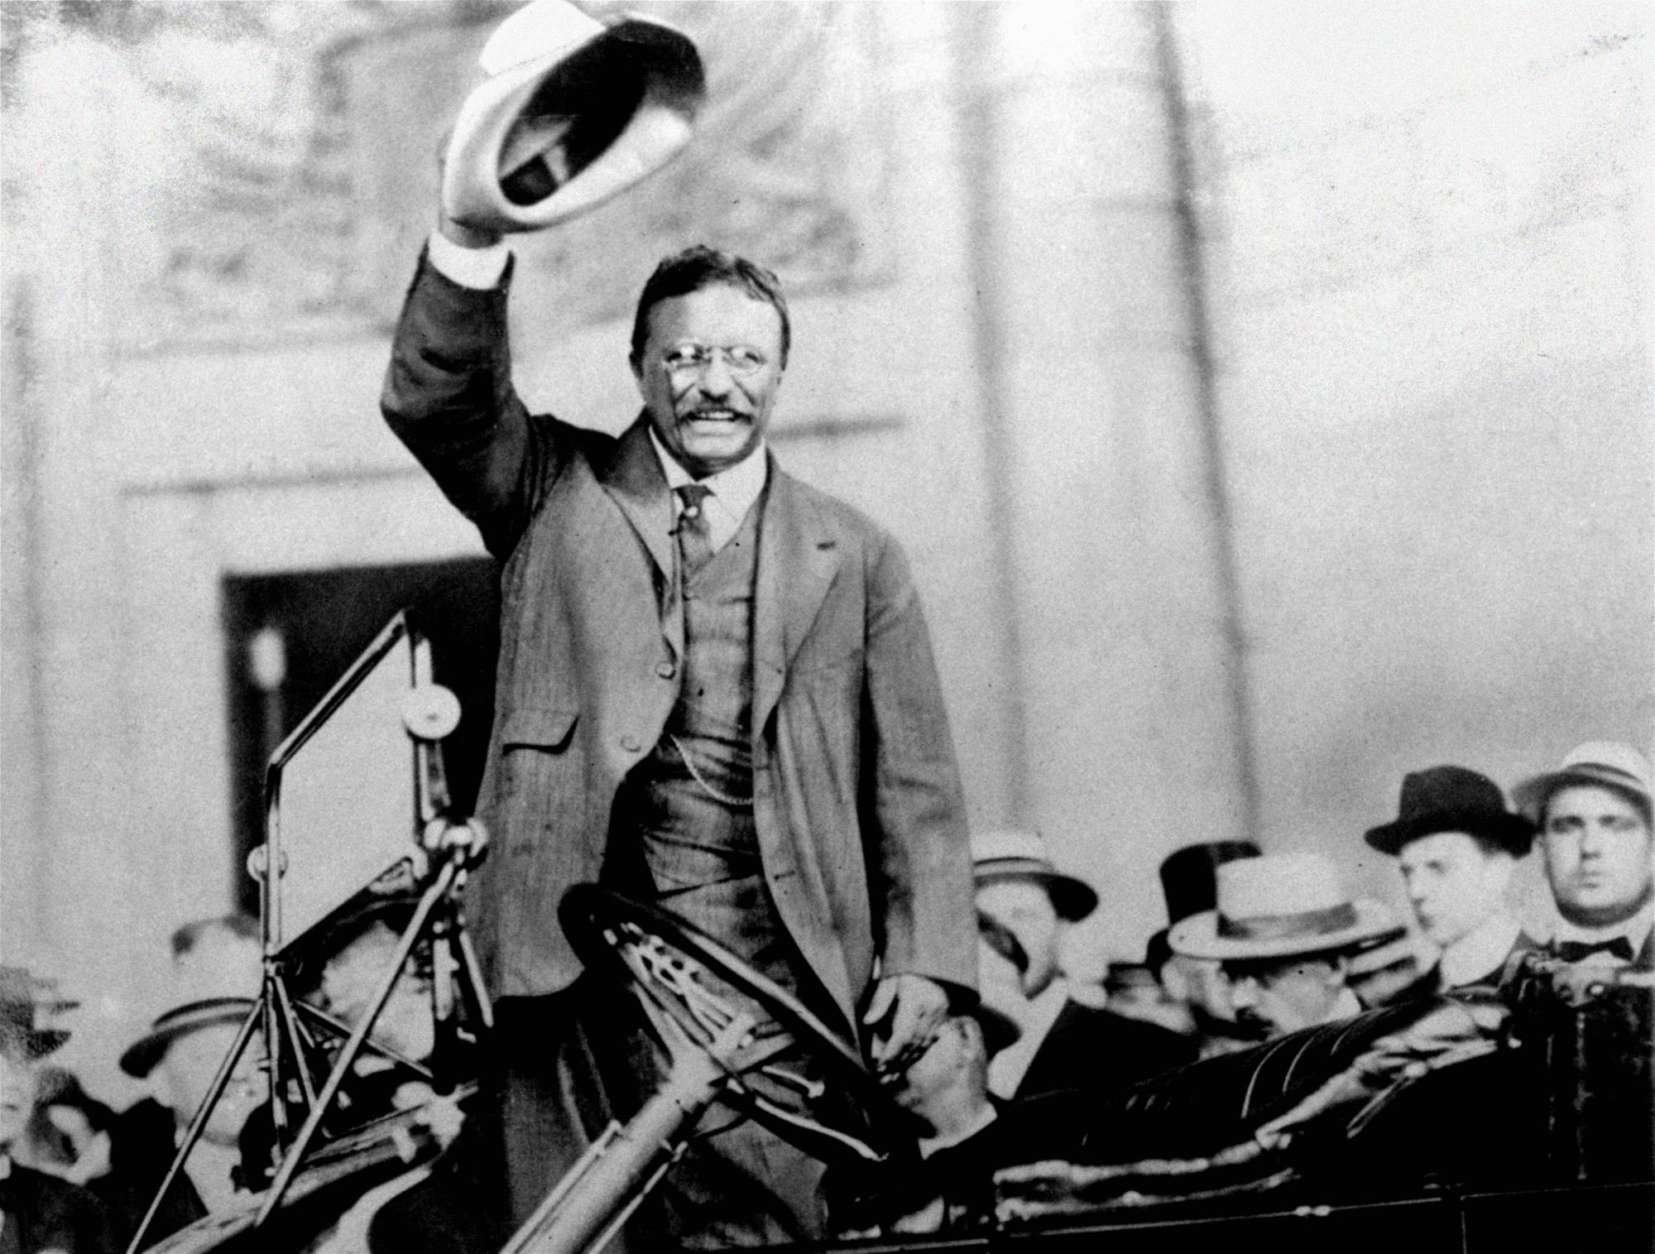 FILE - In this 1904 file photo, Theodore Roosevelt campaigns for the presidency in 1904. Roosevelt was awarded the Nobel Peace Prize in 1906 for negotiating peace in the 1904-5 war between Russia and Japan. Roosevelt, who was U.S. President for eight years from 1901, also resolved a dispute with Mexico. This year's winner is due to be announced on Friday, Oct. 6, 2017. (AP Photo, File)